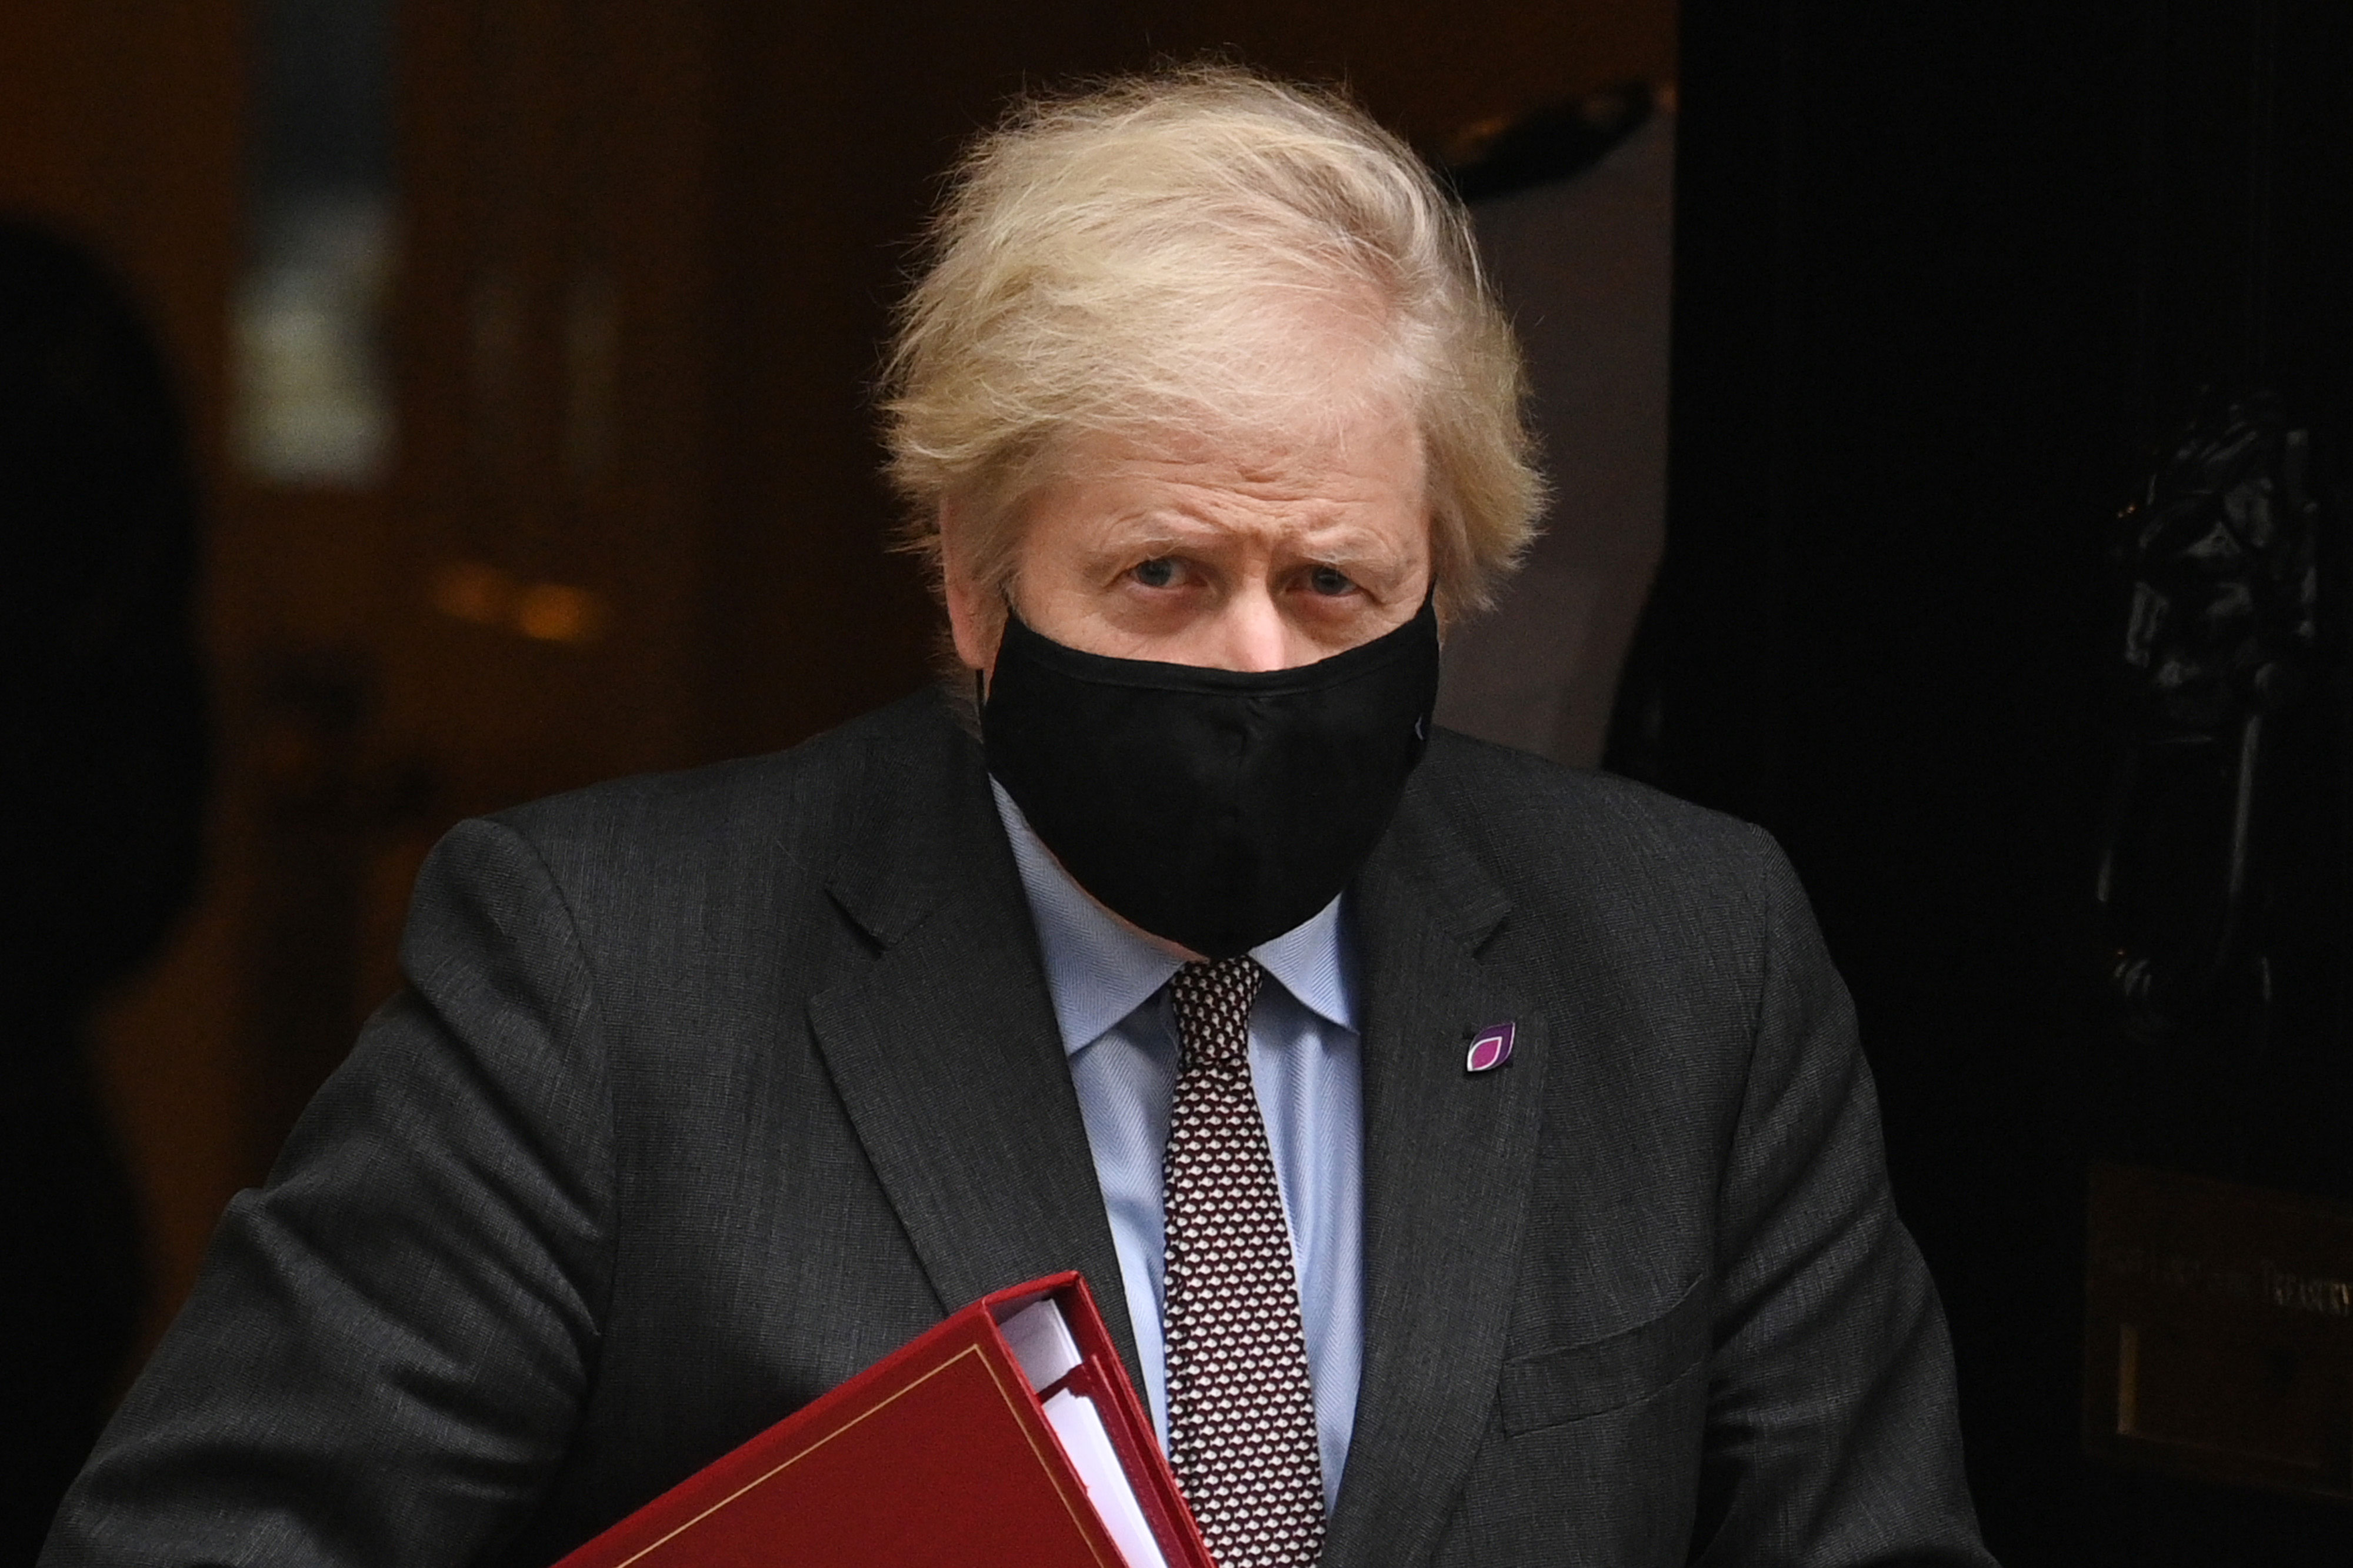 UK Prime Minister Boris Johnson leaves Downing Street in London on January 27.